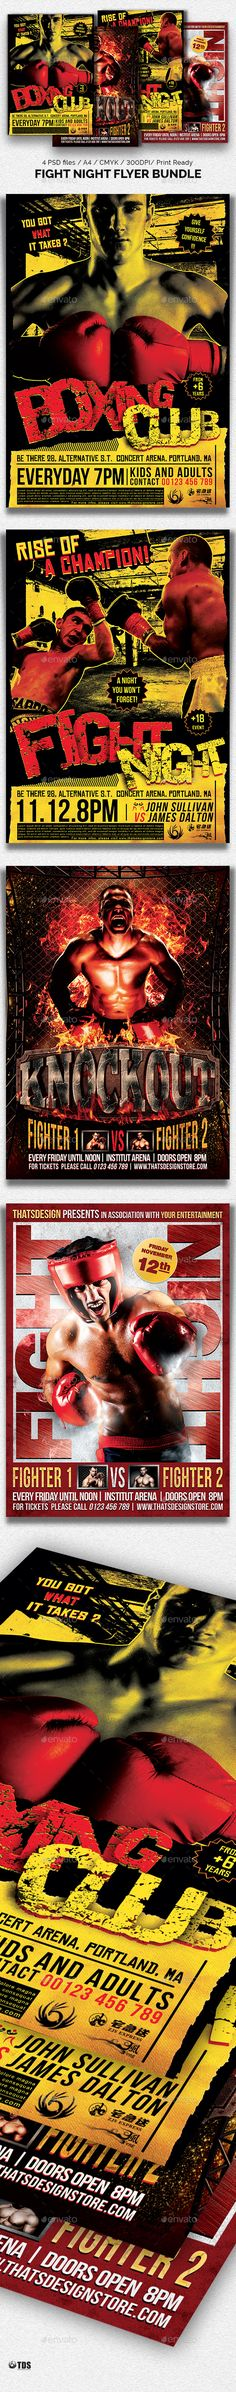 Fight Night Flyer Bundle by lou606 4 Photoshop psd files, 1 help file.A4 size (21x29.7 cm) or (8.3x11.7 inch) with bleed (21.6x30.3 cm) or (8.5x11.9 inch). Print Rea